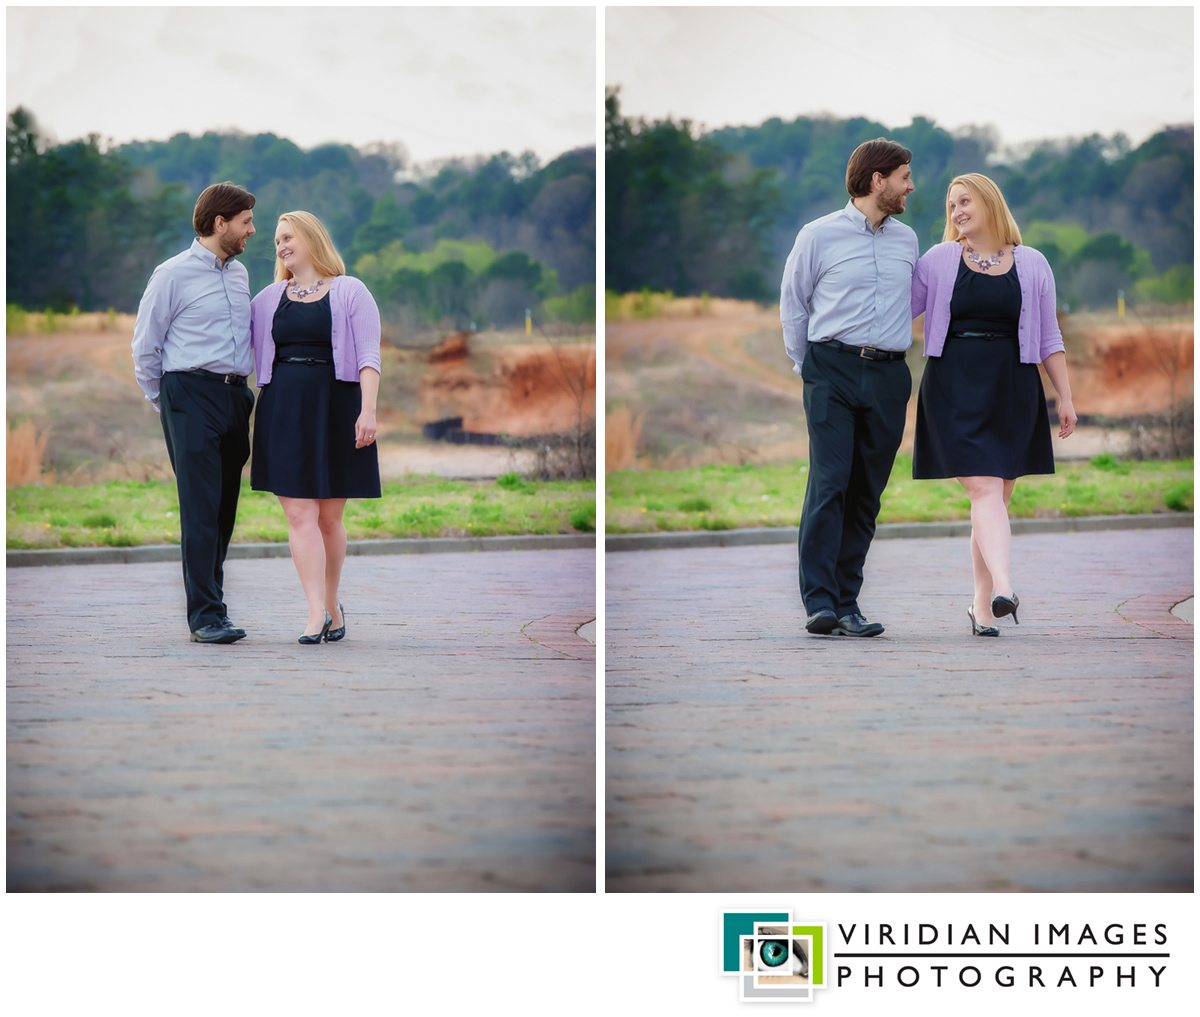 Atlanta_Engagement_ViridianImages_Hillary_Bruce_photo-16